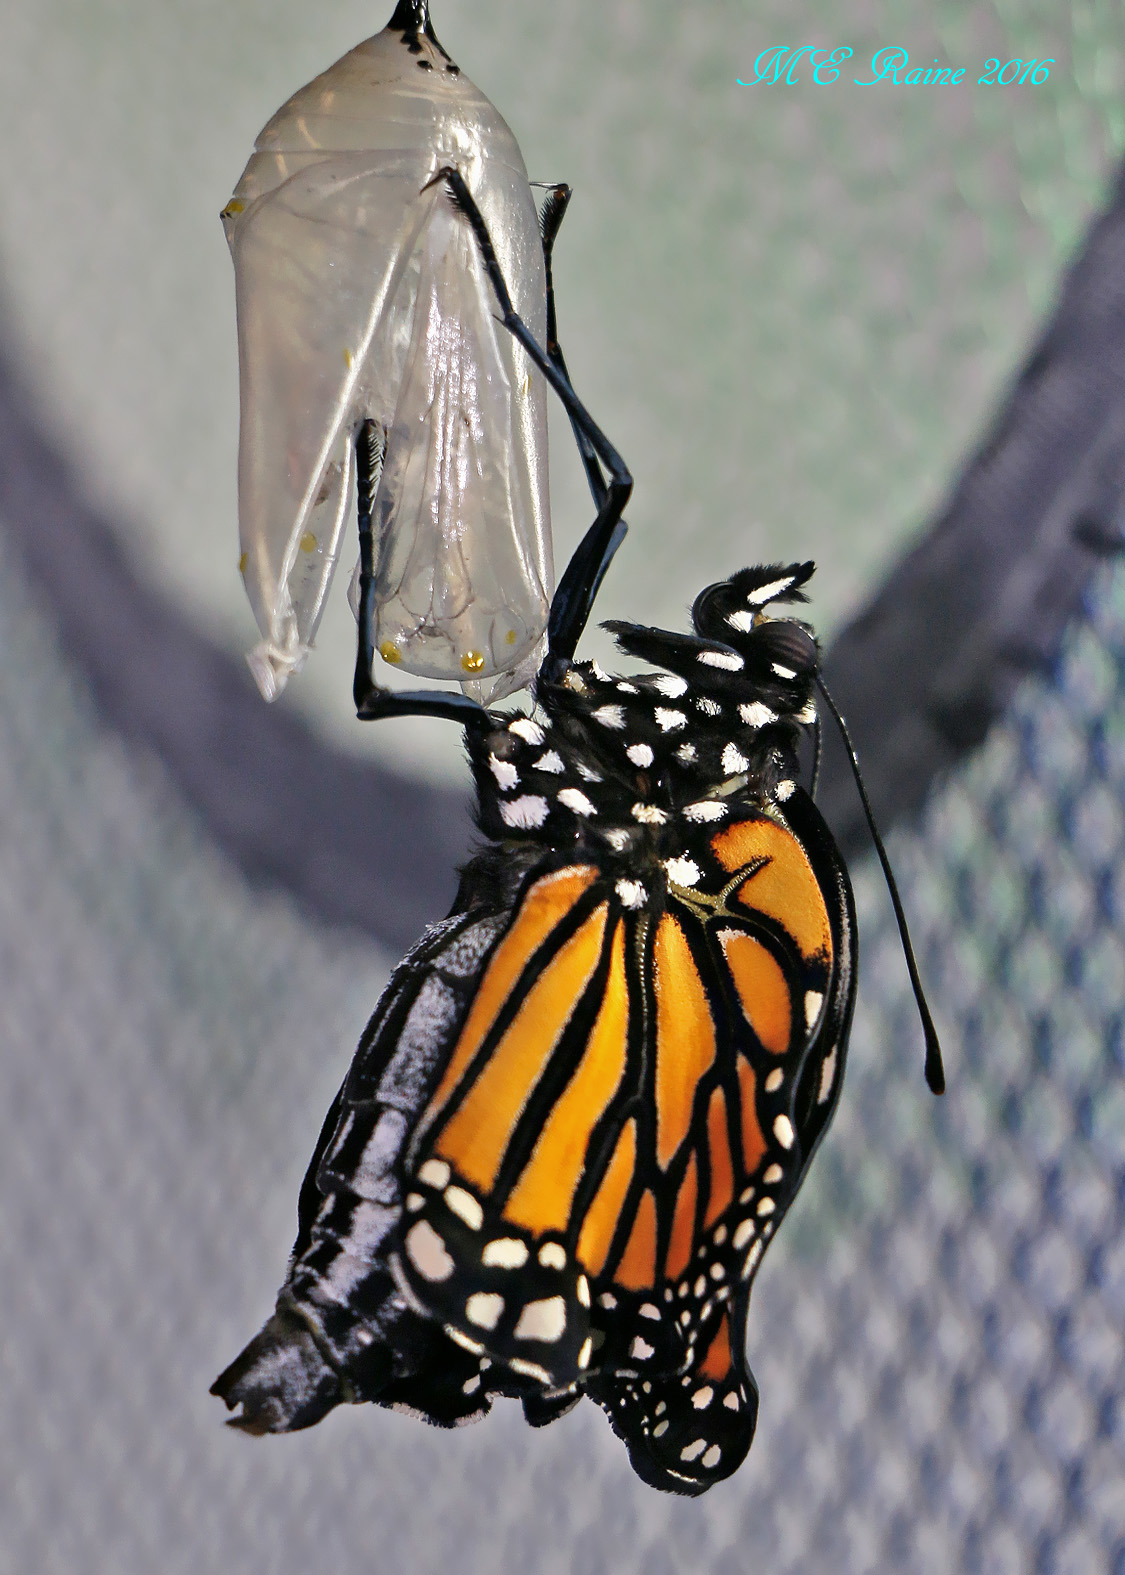 monarch-butterfly-emergence2-of-no-13-in-safe-house-1-091916-9am-ok-wm